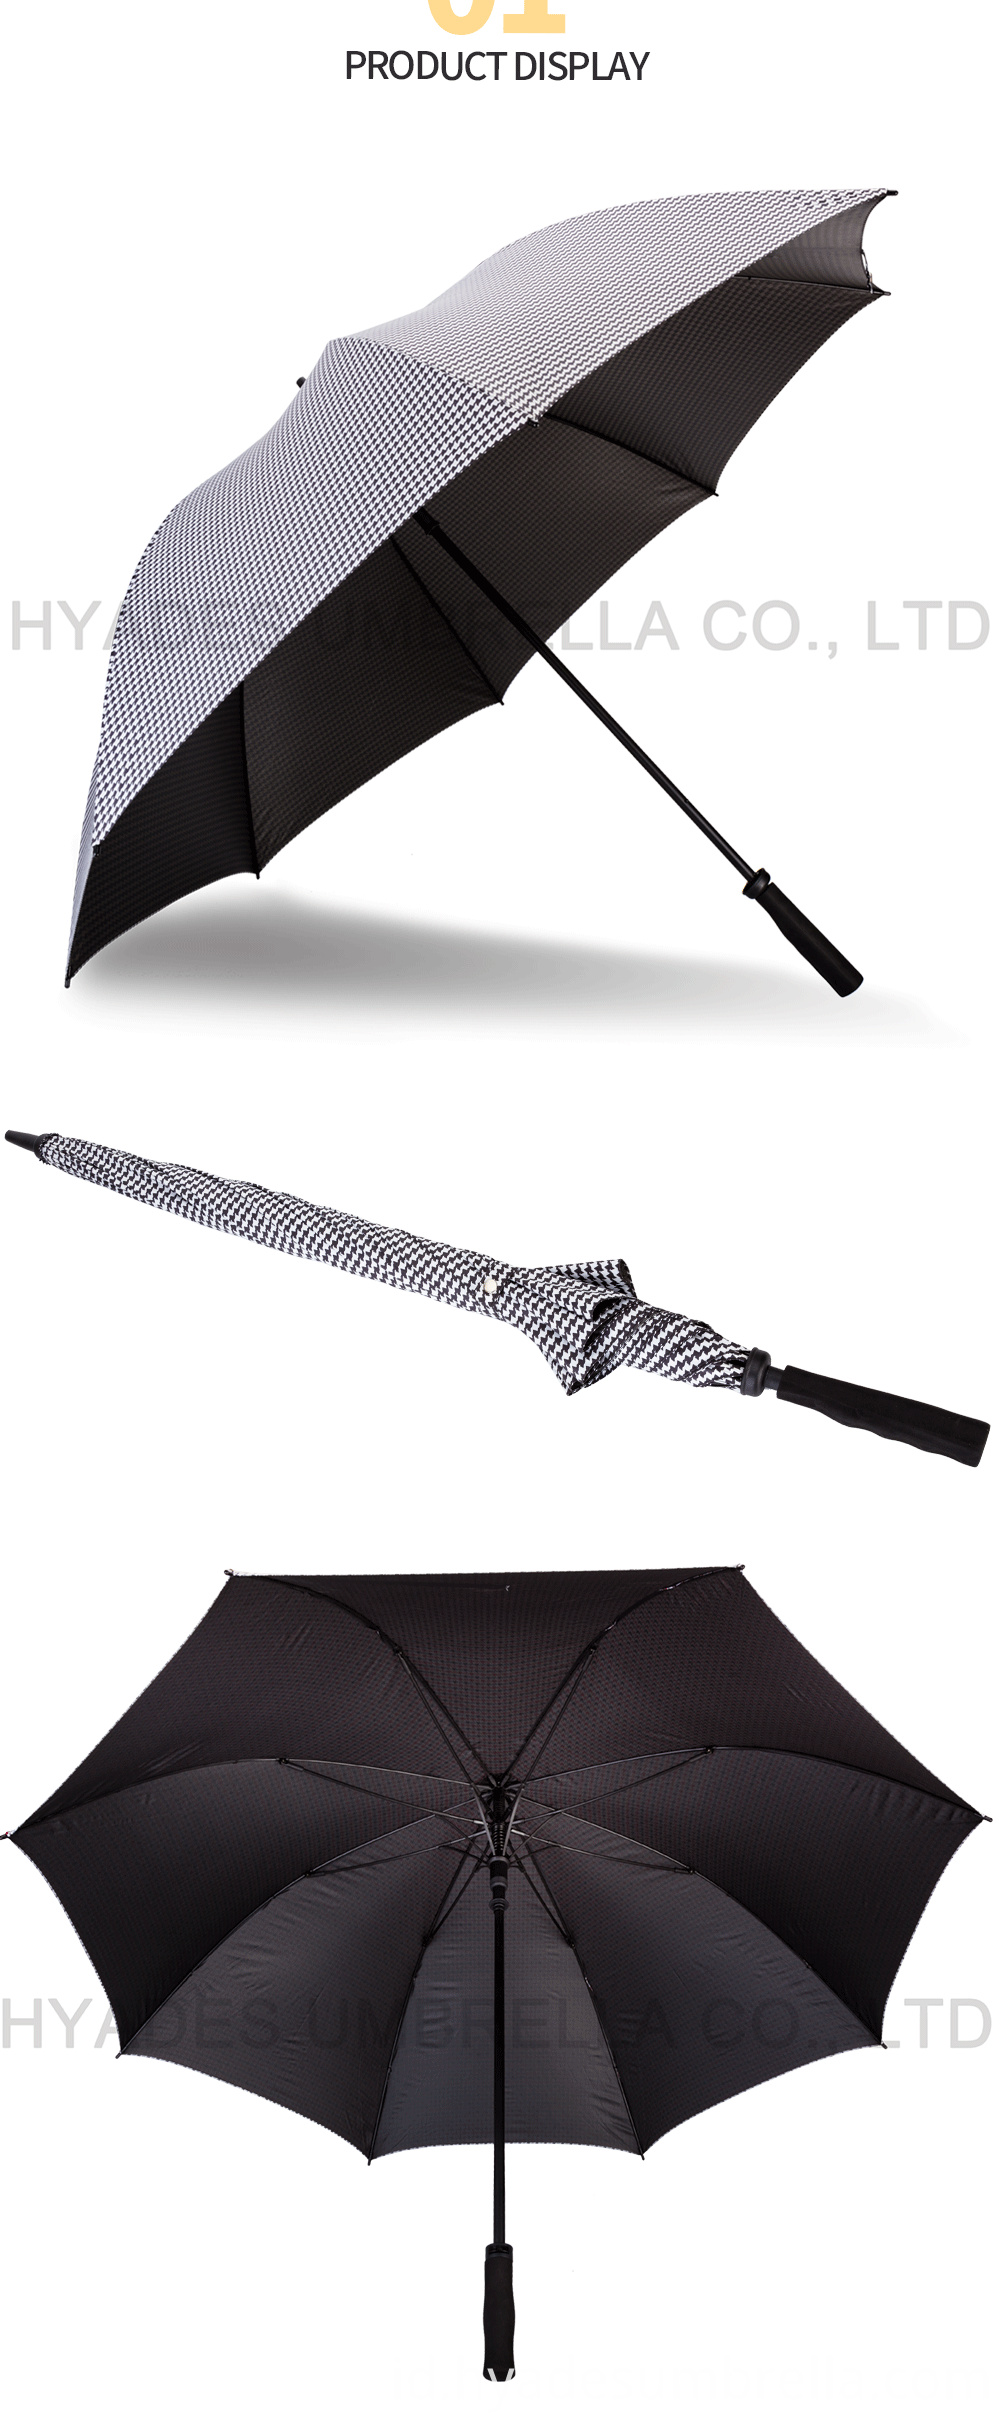 Product-Descrption-page---Ultra-Light-Golf-Umbrella_04